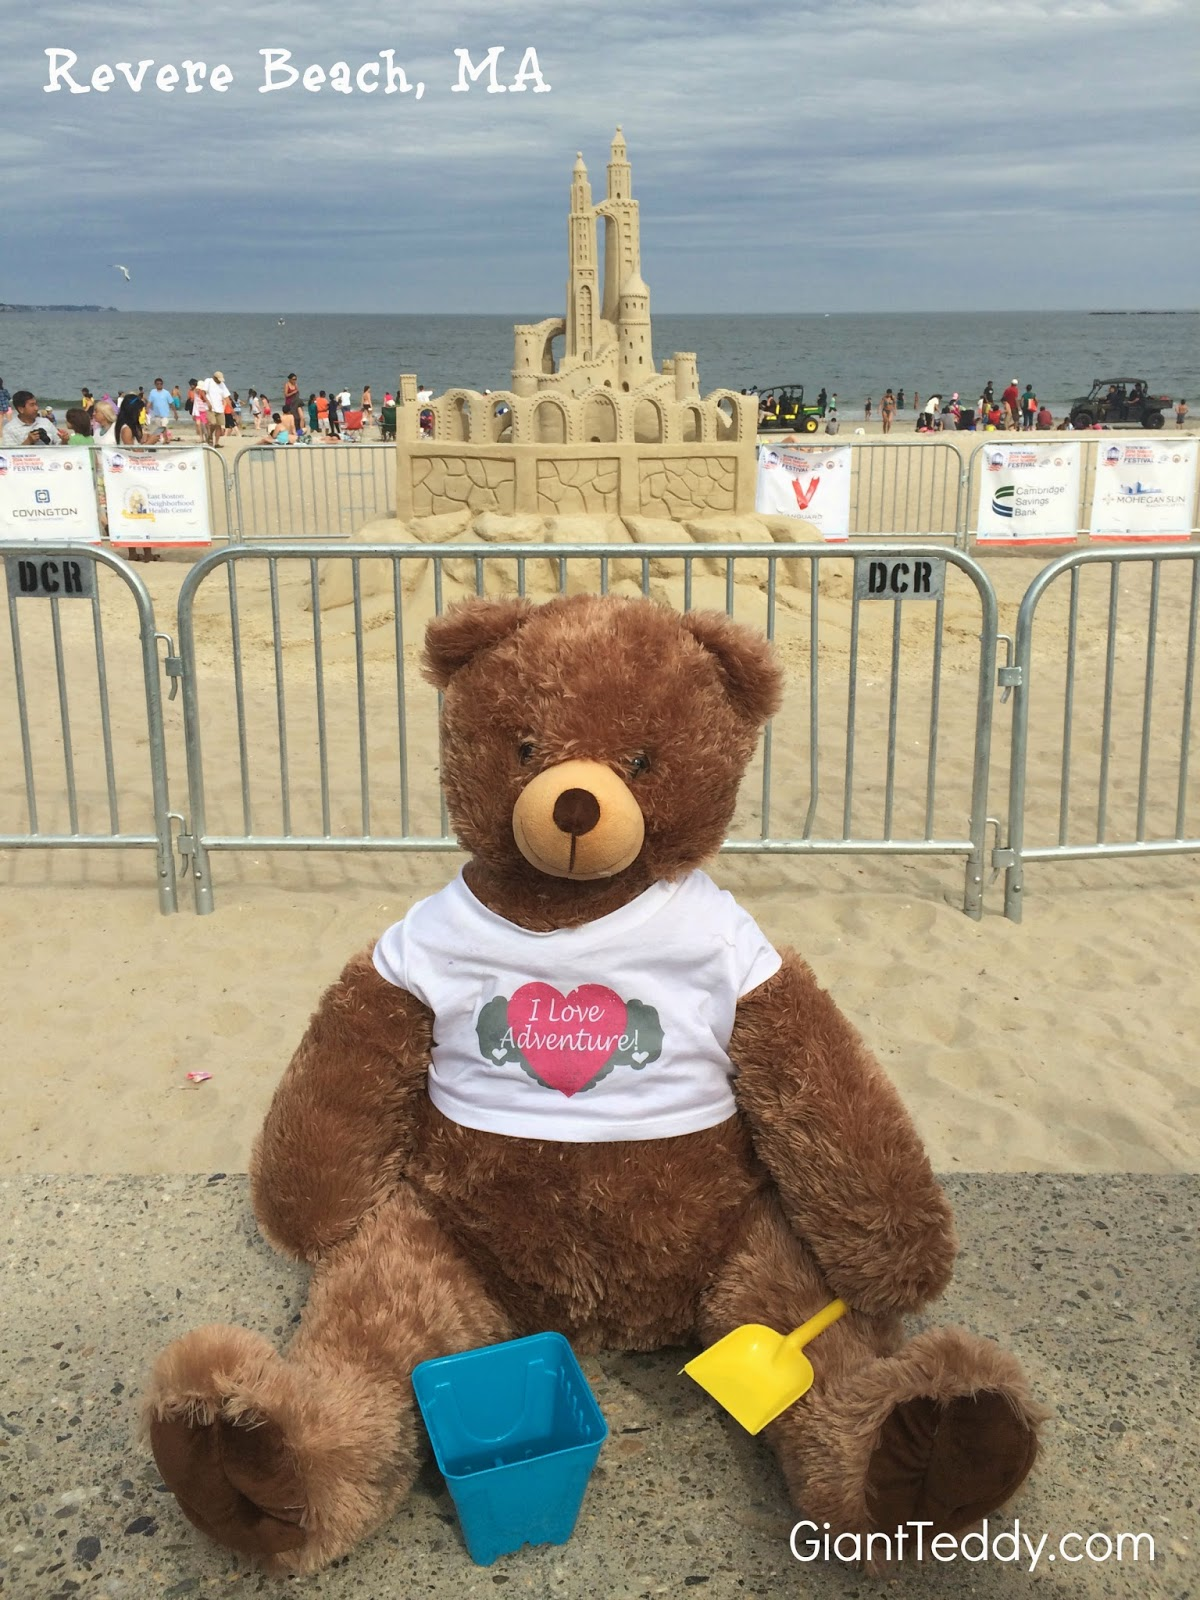 Giant Teddy bear expertise in sand sculpting